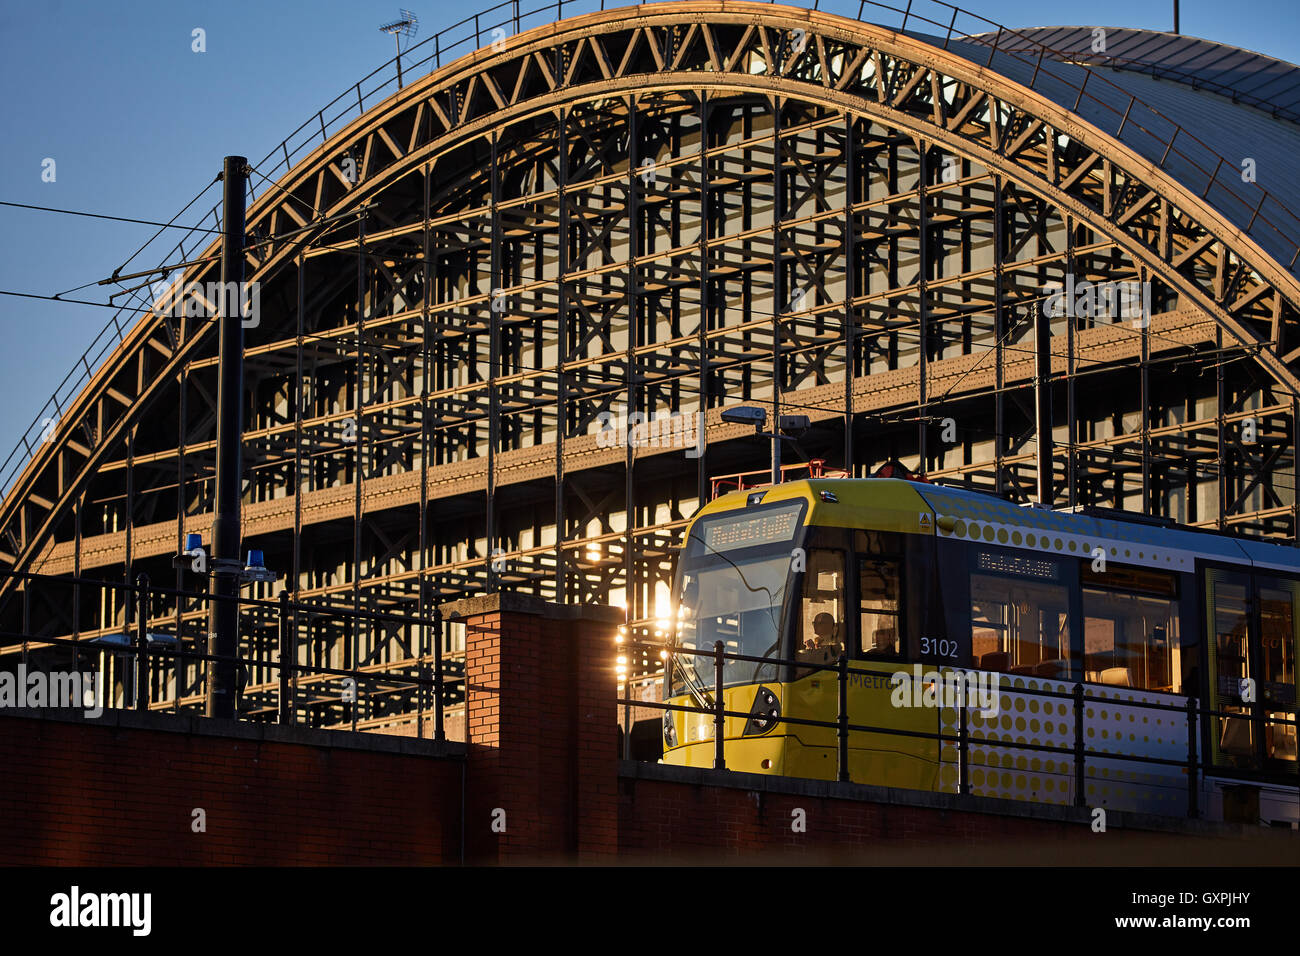 Manchester central tram passing gmex Tram sassing back Architect